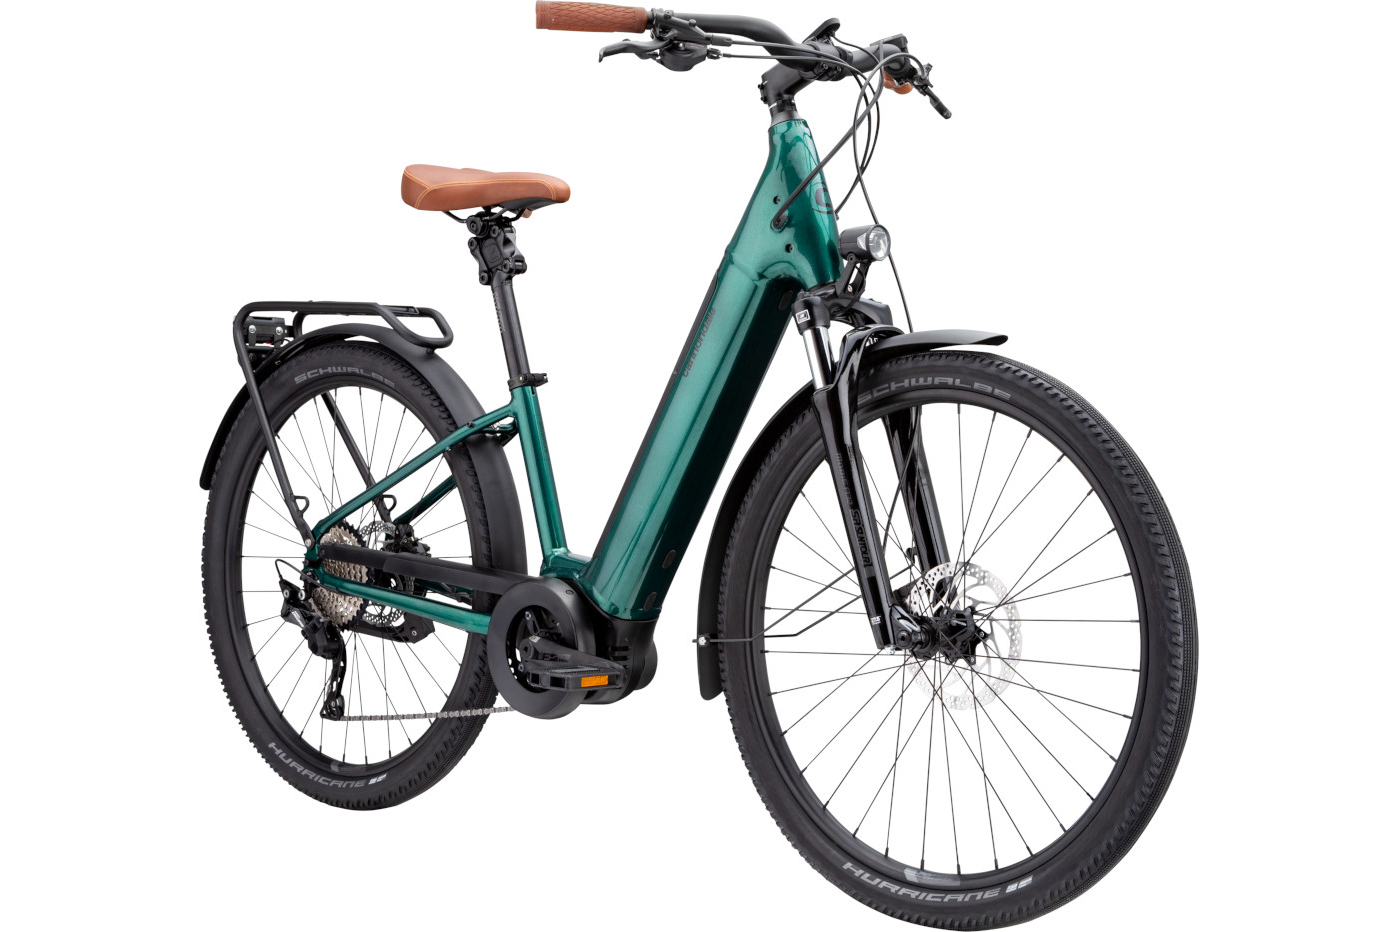 Cannondale Adventure Neo E-Bike